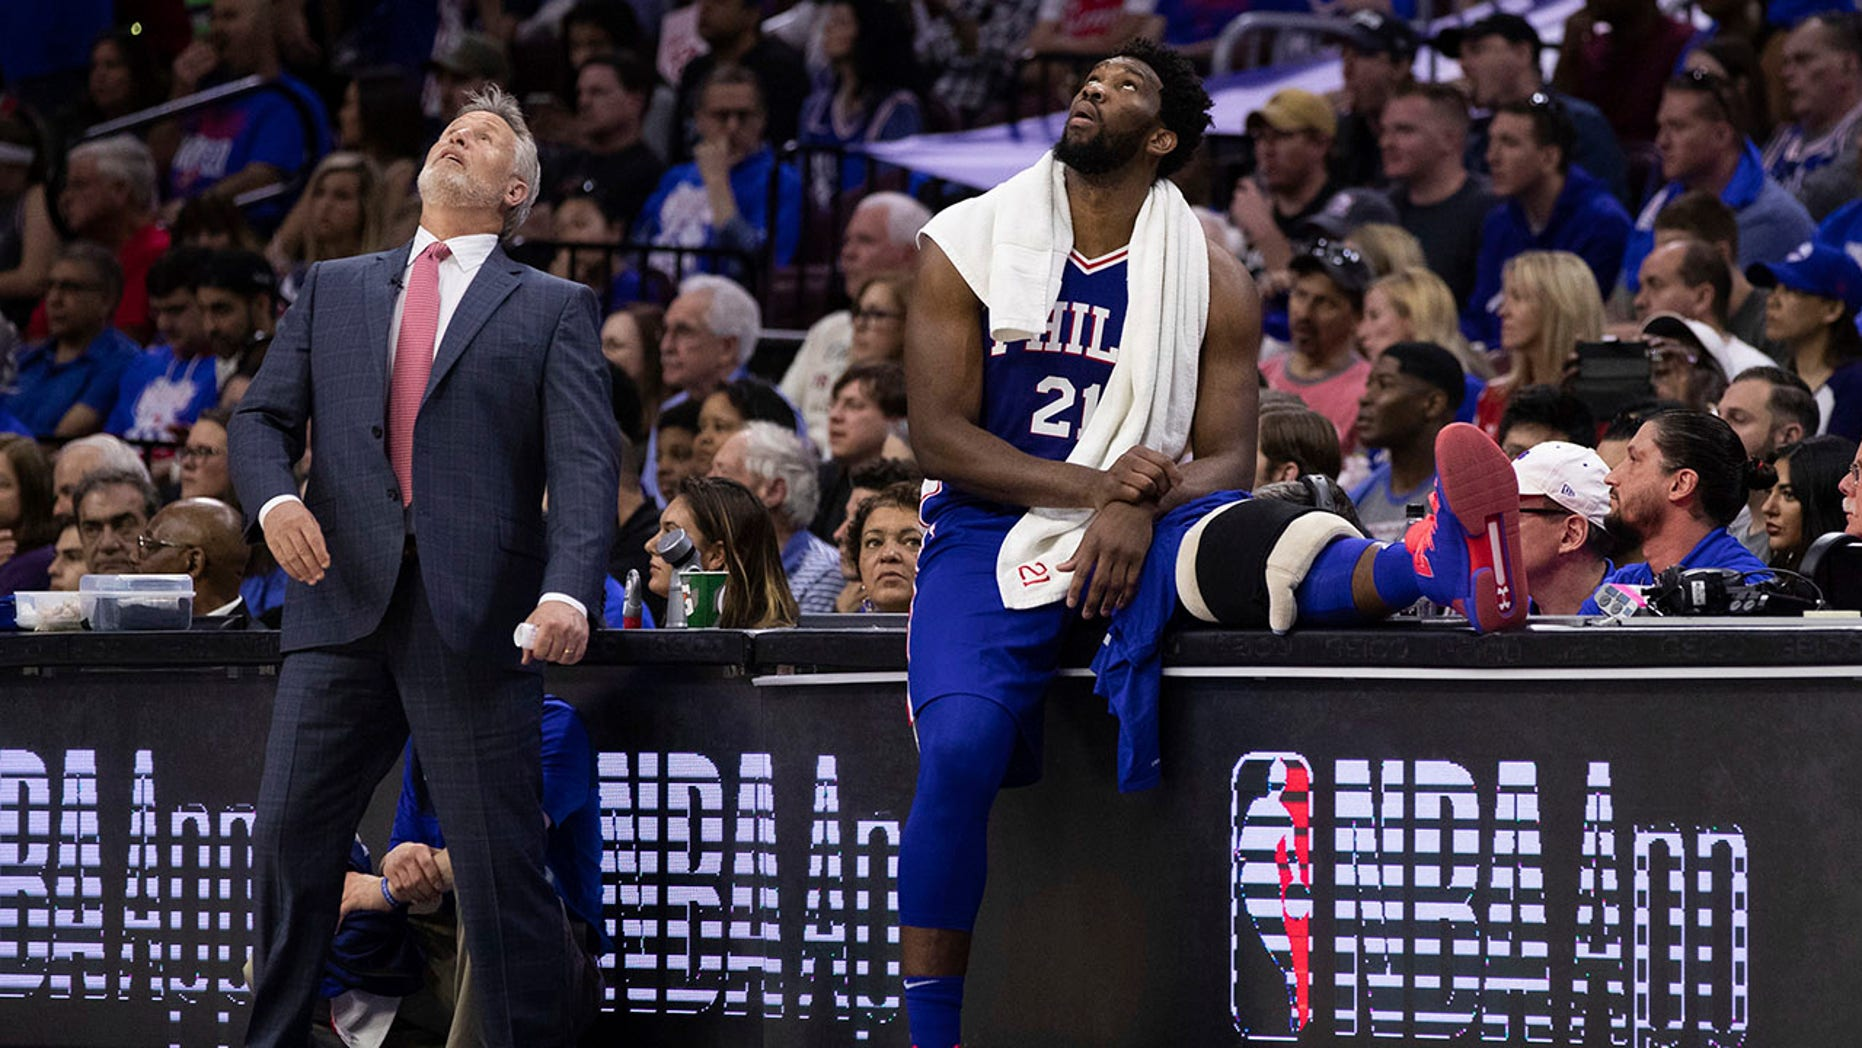 Philadelphia 76ers head coach Brett Brown, left, and Joel Embiid, right, of Cameroon, look up at the scoreboard during the first half in Game 1 of a first-round NBA basketball playoff series against the Brooklyn Nets, Saturday, April 13, 2019, in Philadelphia. The Nets won 111-102. (Associated Press)